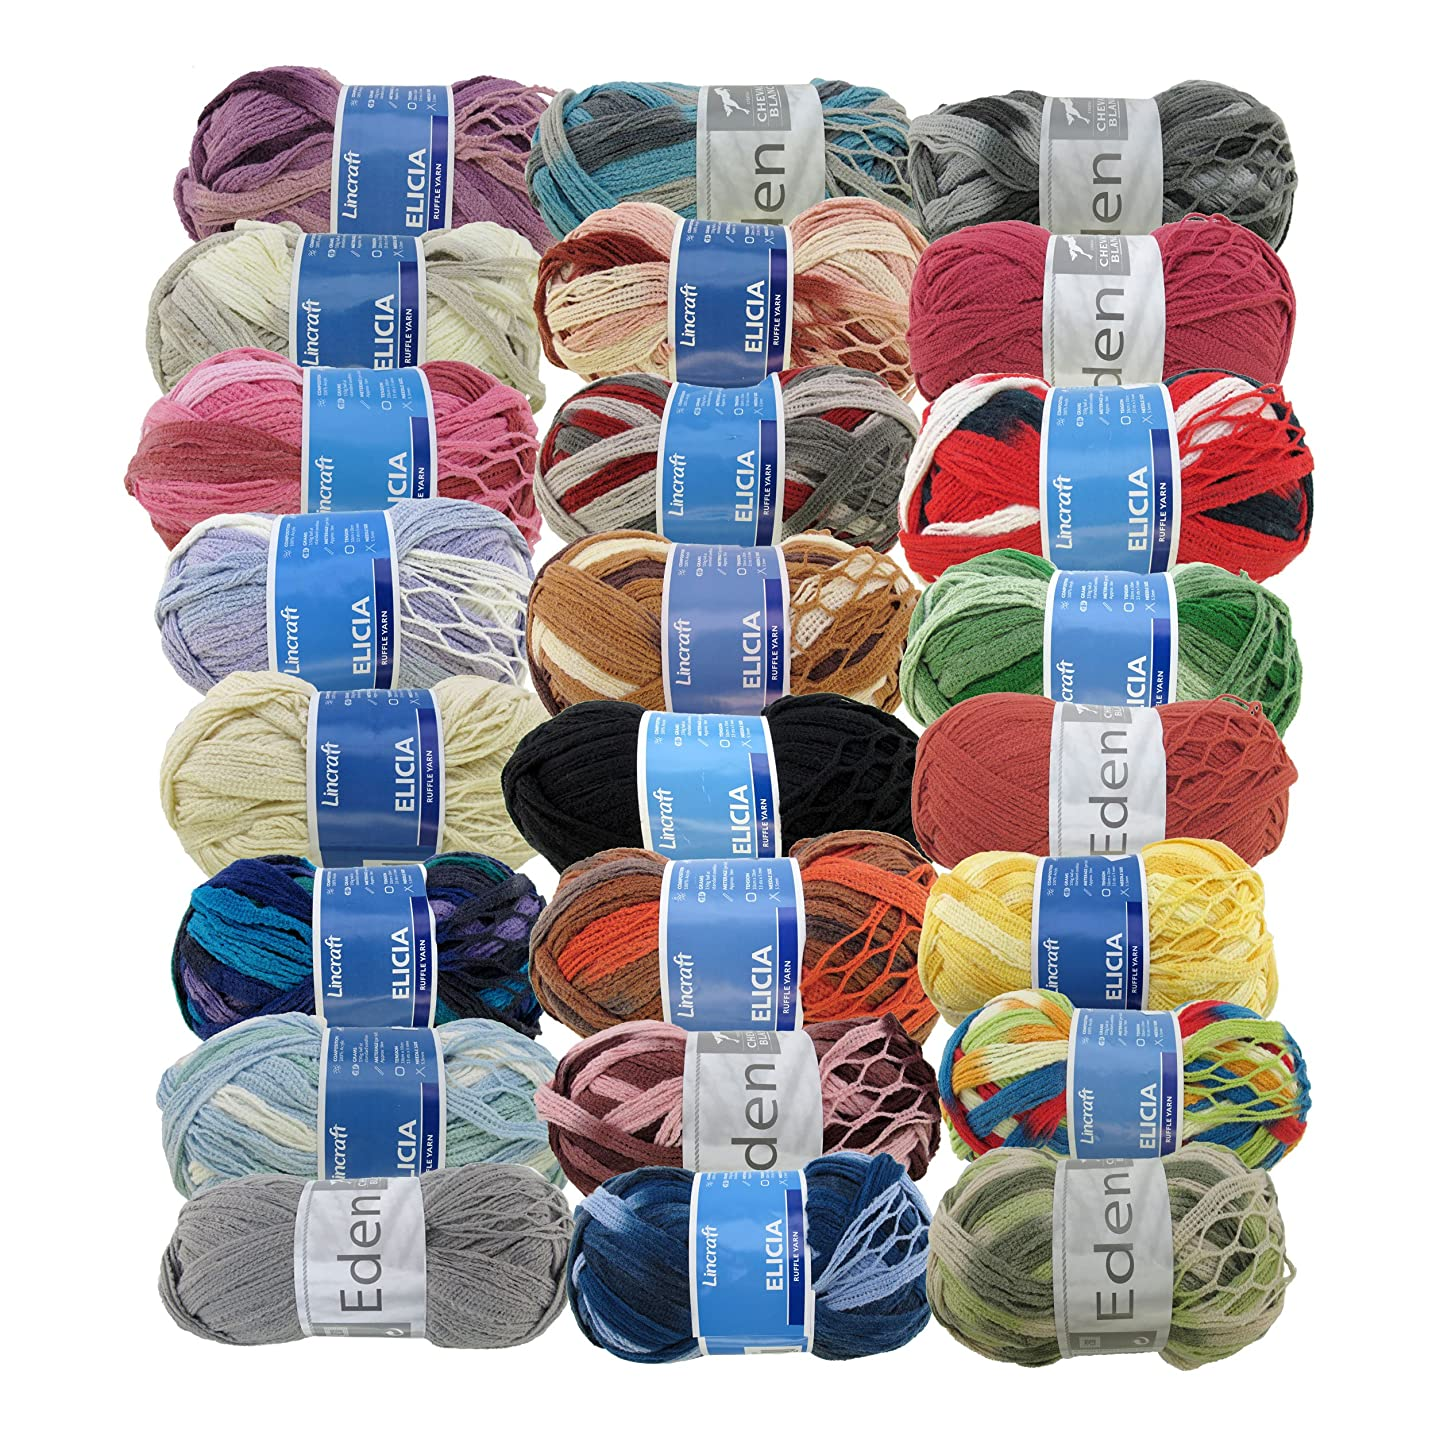 BambooMN Fancy Ruffle Scarf Yarn - Frilly Yarn for Scarves and Shawls - 150g - 100% Acrylic Yarn - Surprise Pack - 4 Skeins